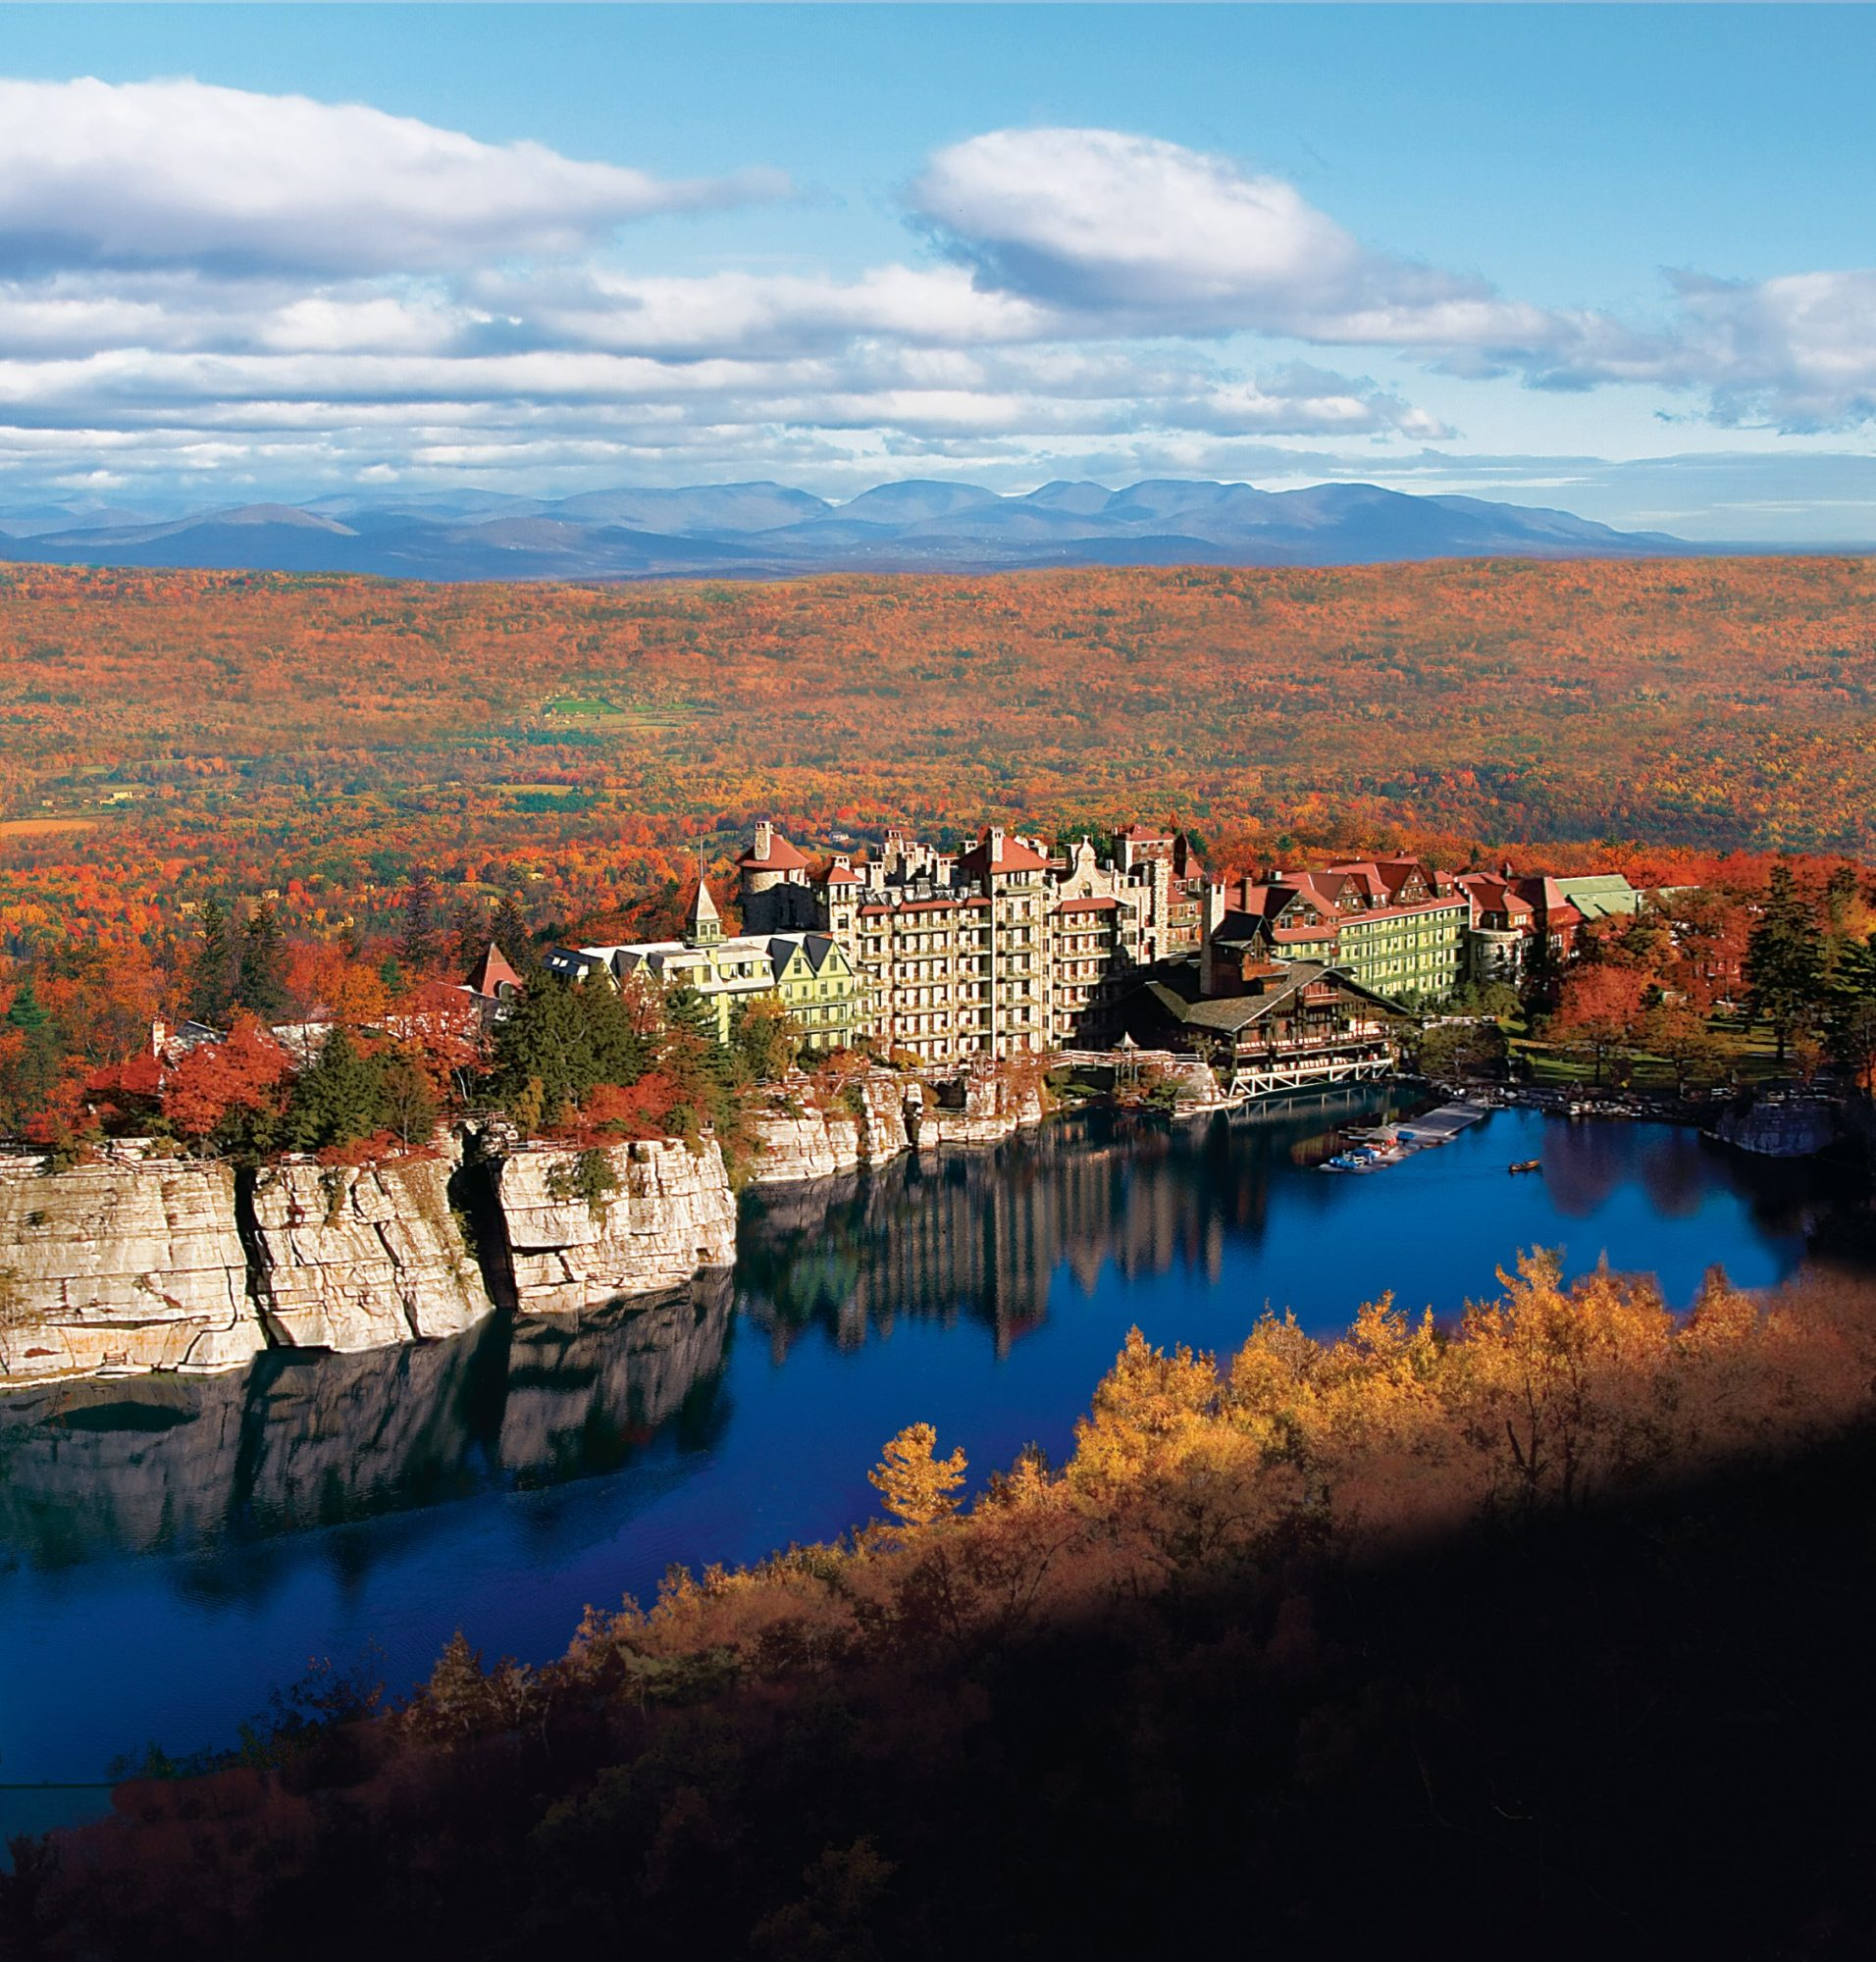 No. 22 (tie) Mohonk Mountain House in New Paltz, New York